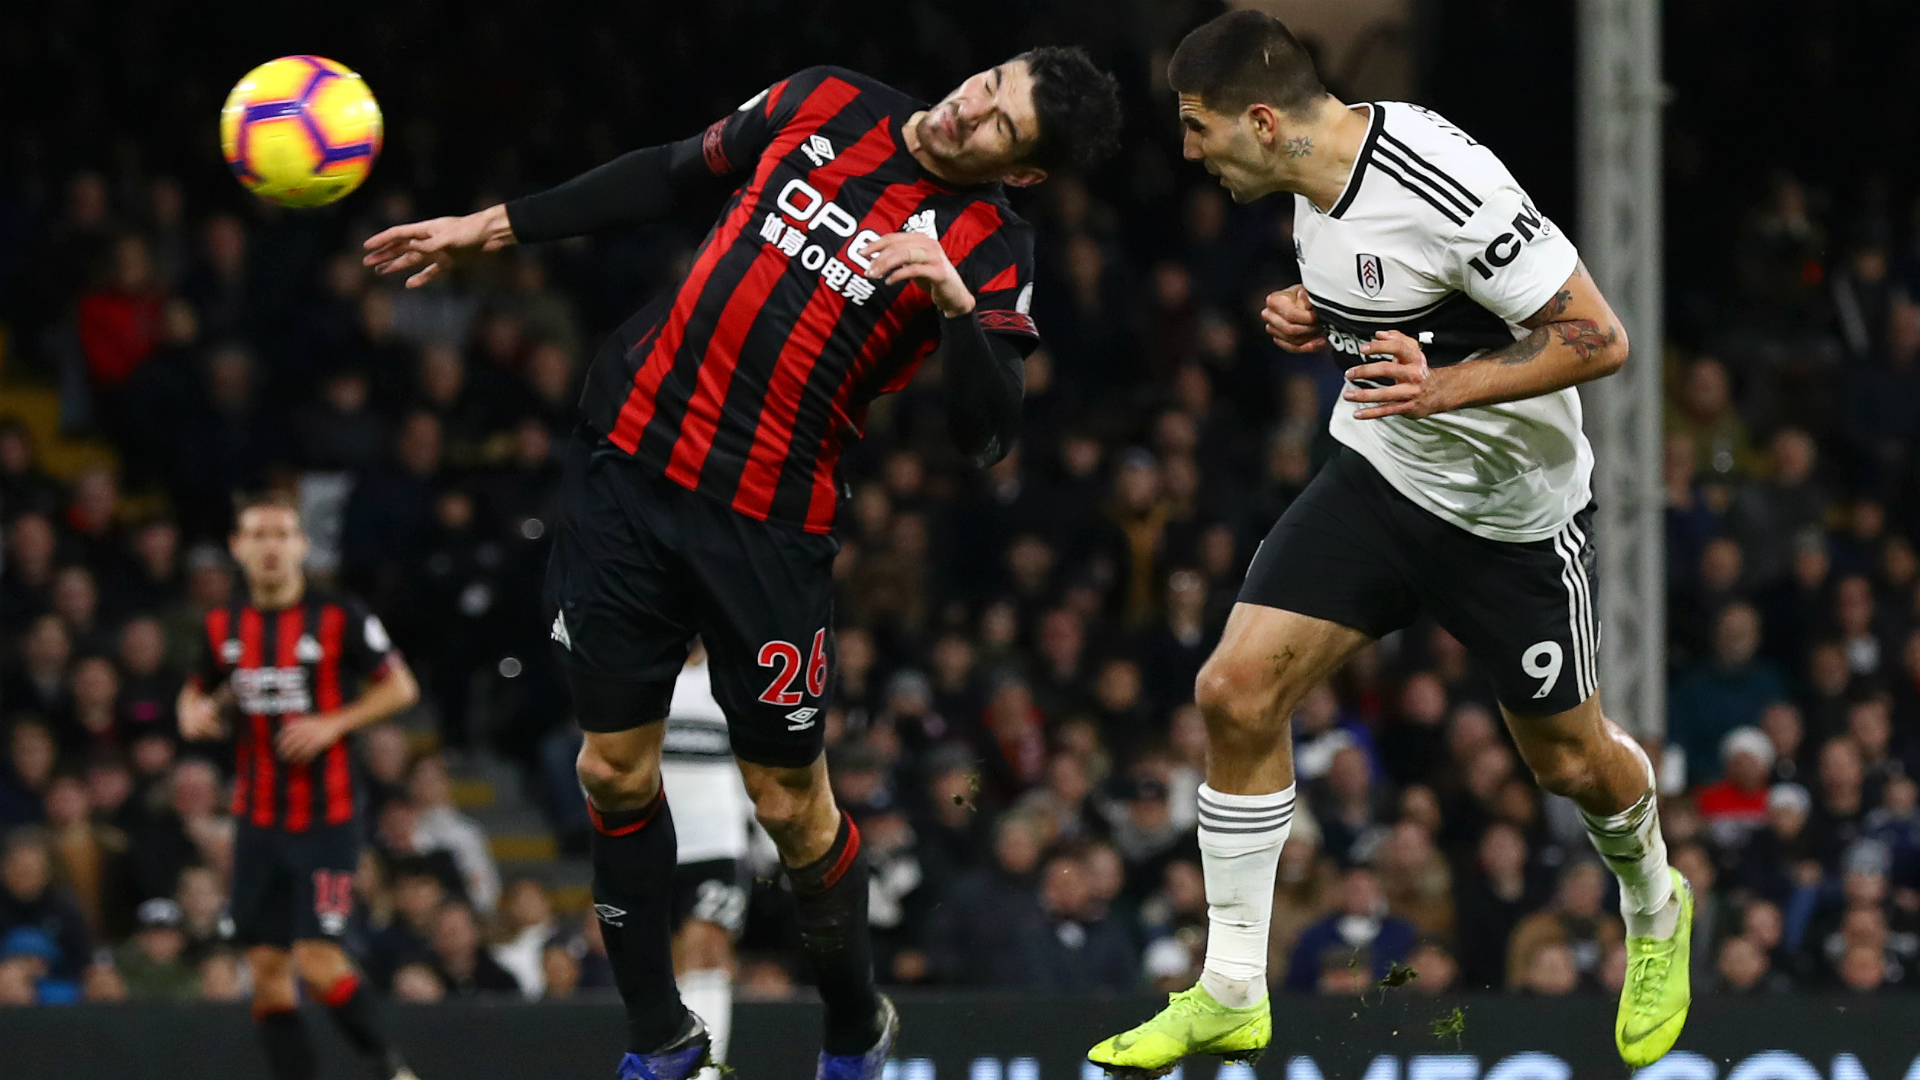 Fulham 1 Huddersfield Town 0: Mitrovic hits injury-time winner